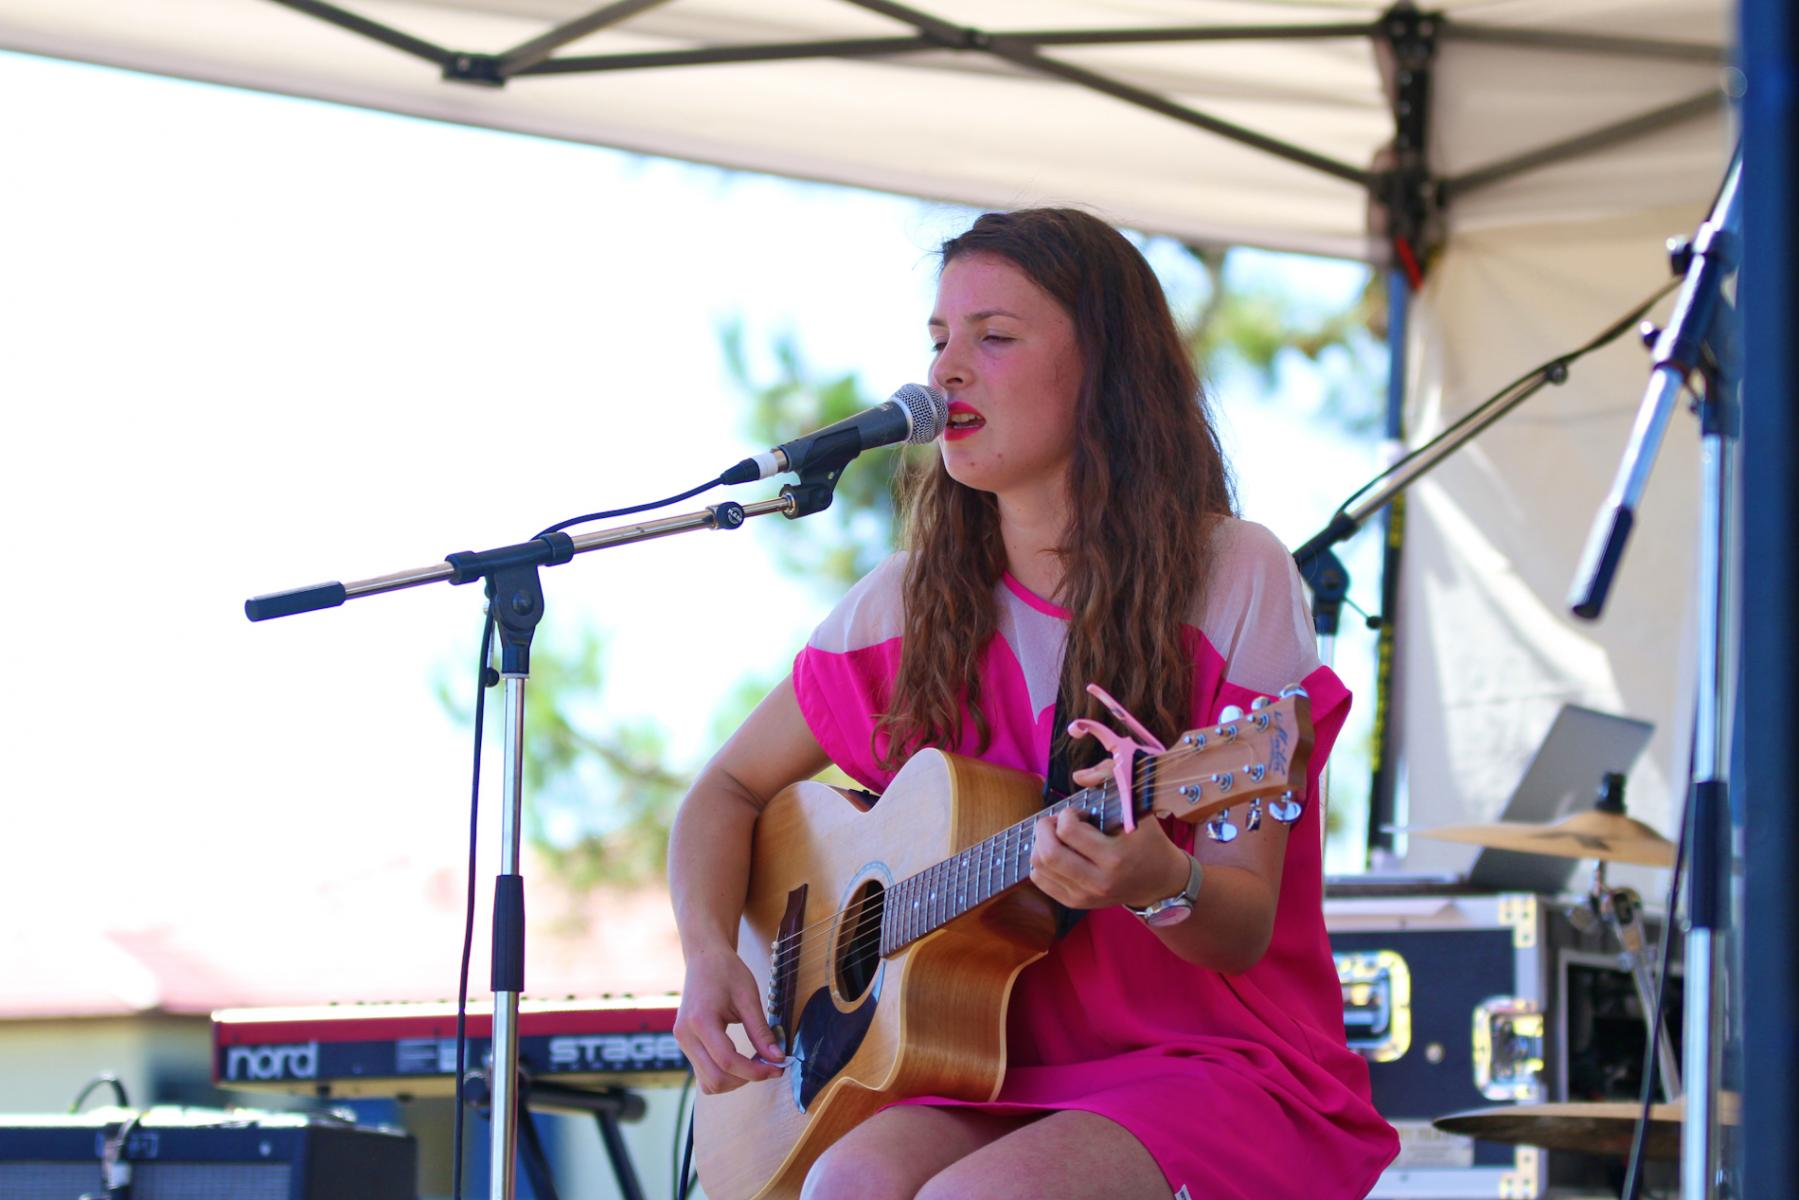 Georgia Lines - Opening for Jamie McDell - Music In Parks - Luckens Reserve - March '13